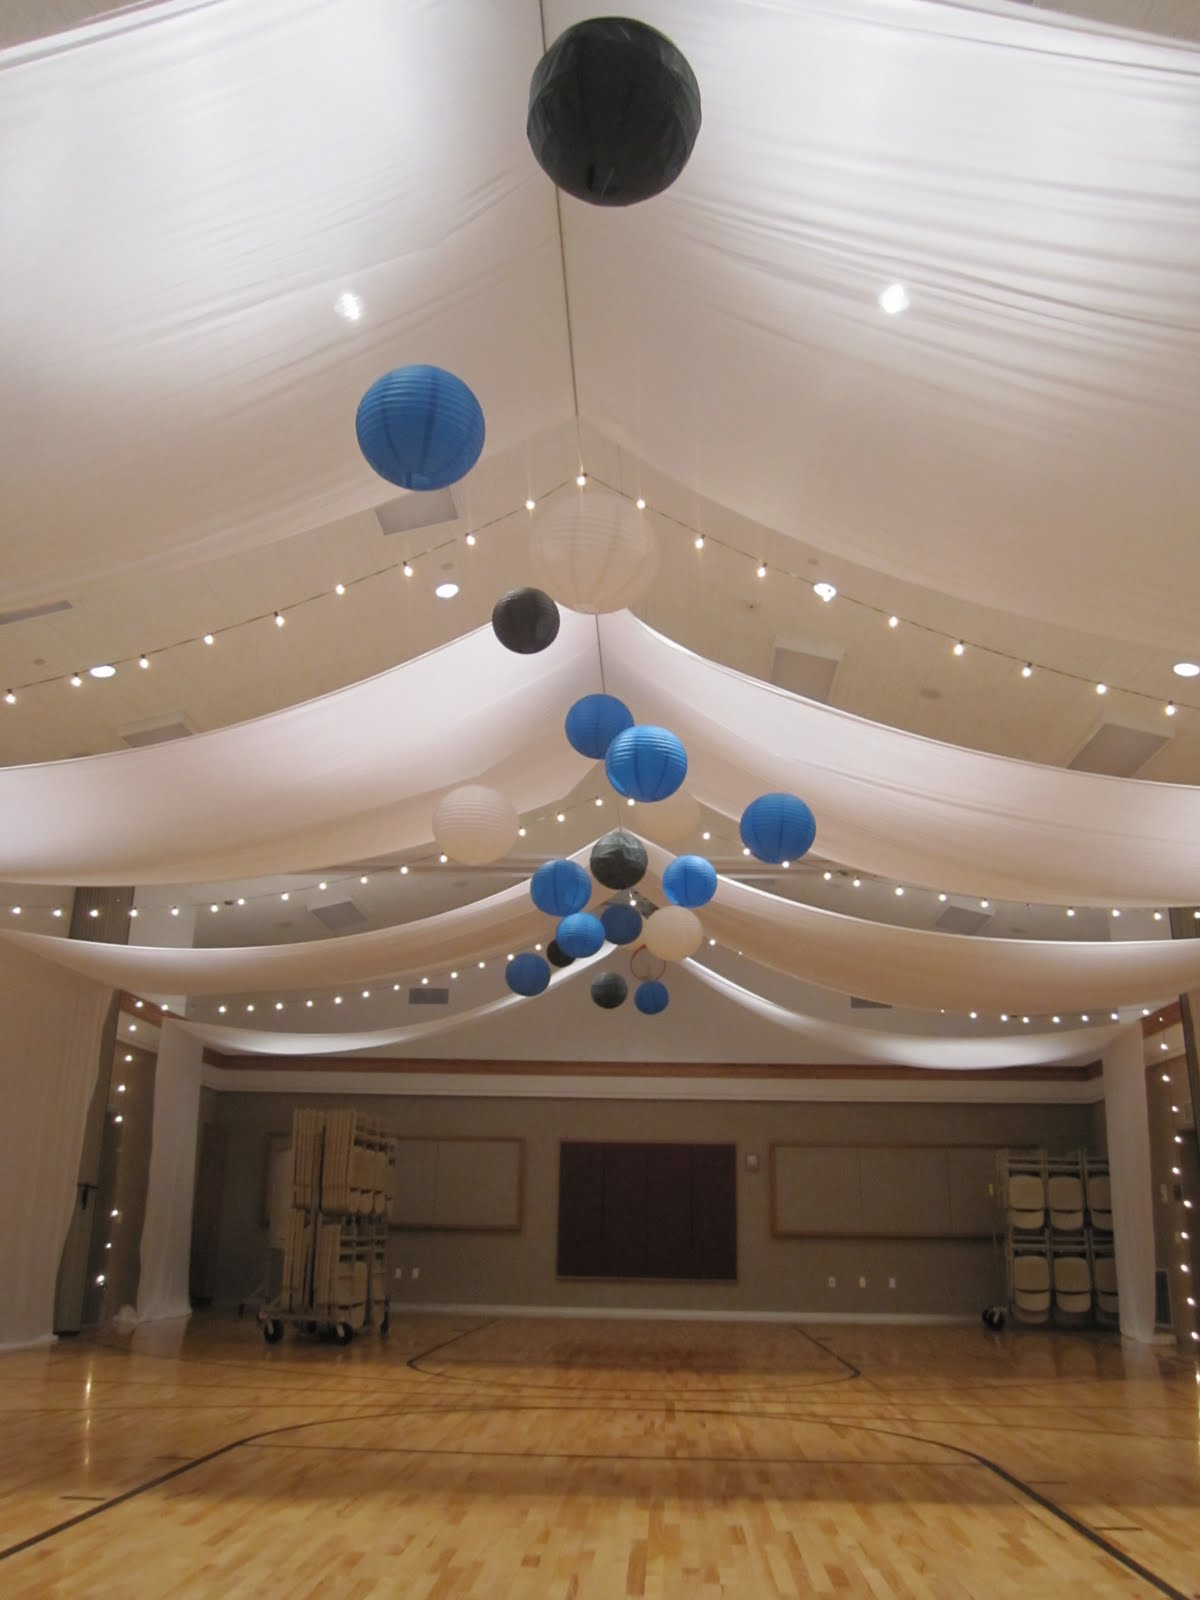 lighting decorating ideas for weddings html with Open Style Ceiling With Paper Lanterns on Latest Wedding Cake Designs besides 386619794 additionally 50851284d24e779c furthermore 570057265321257946 in addition Oil L s.